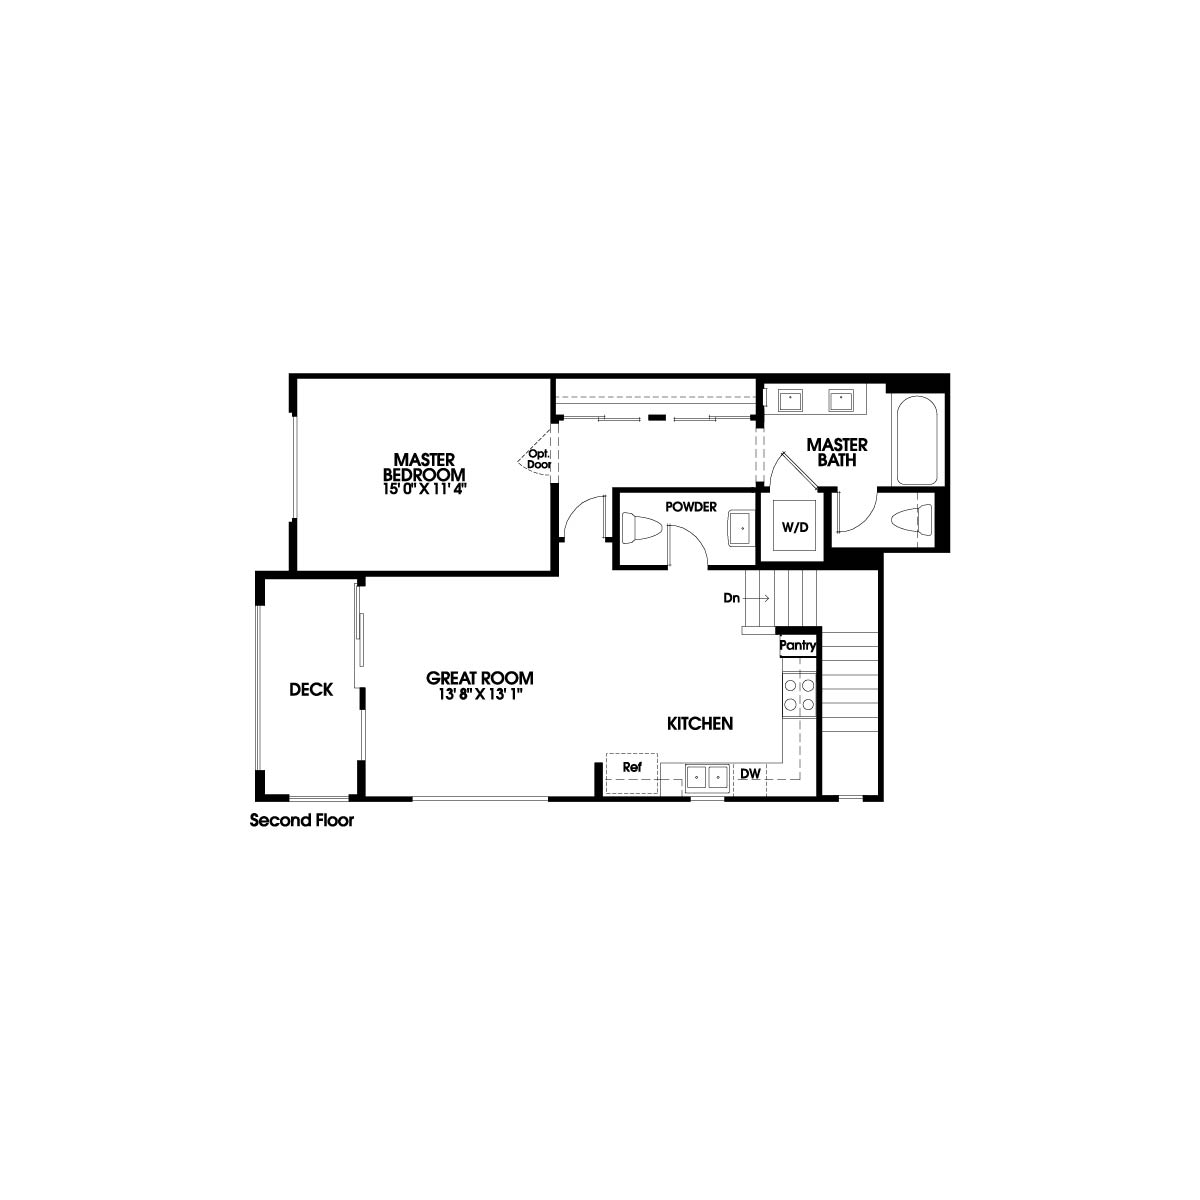 Second floor residence 1 floor plan | Holiday at New Haven in Ontario Ranch, CA | Brookfield Residential